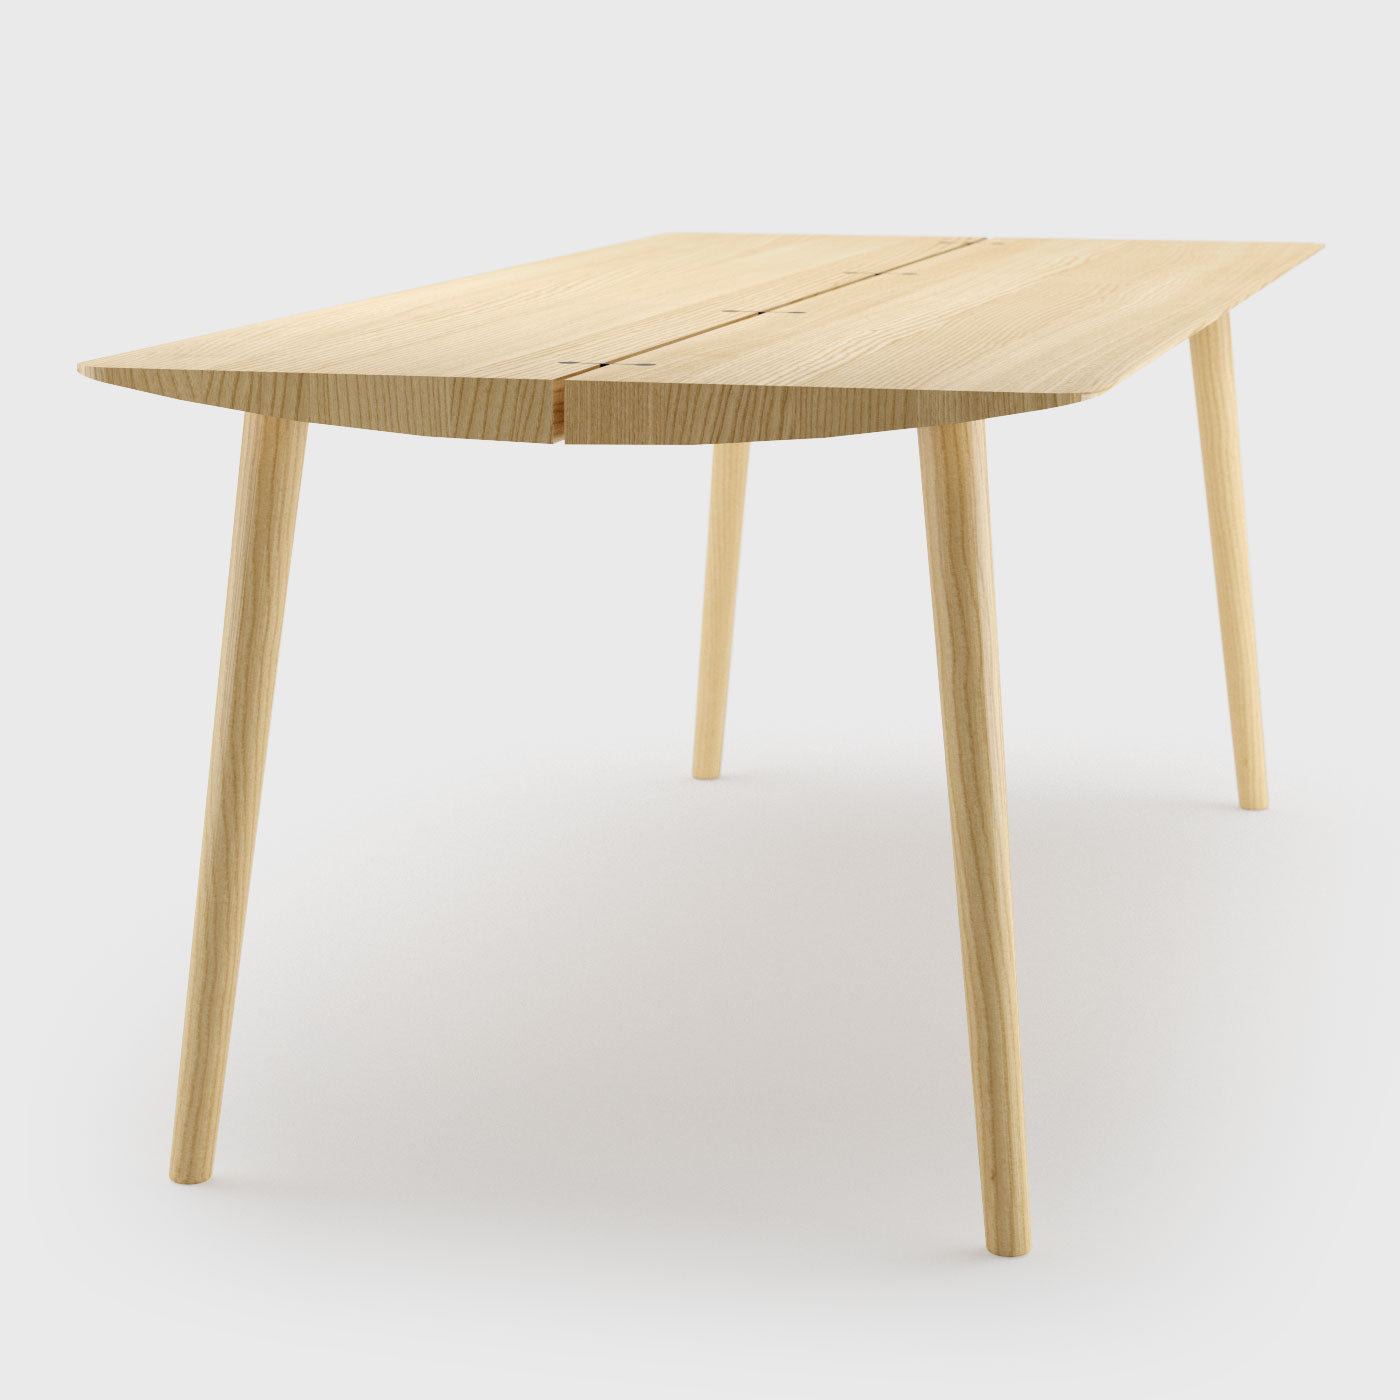 MITJA - NIKA TABLE - Dining Table